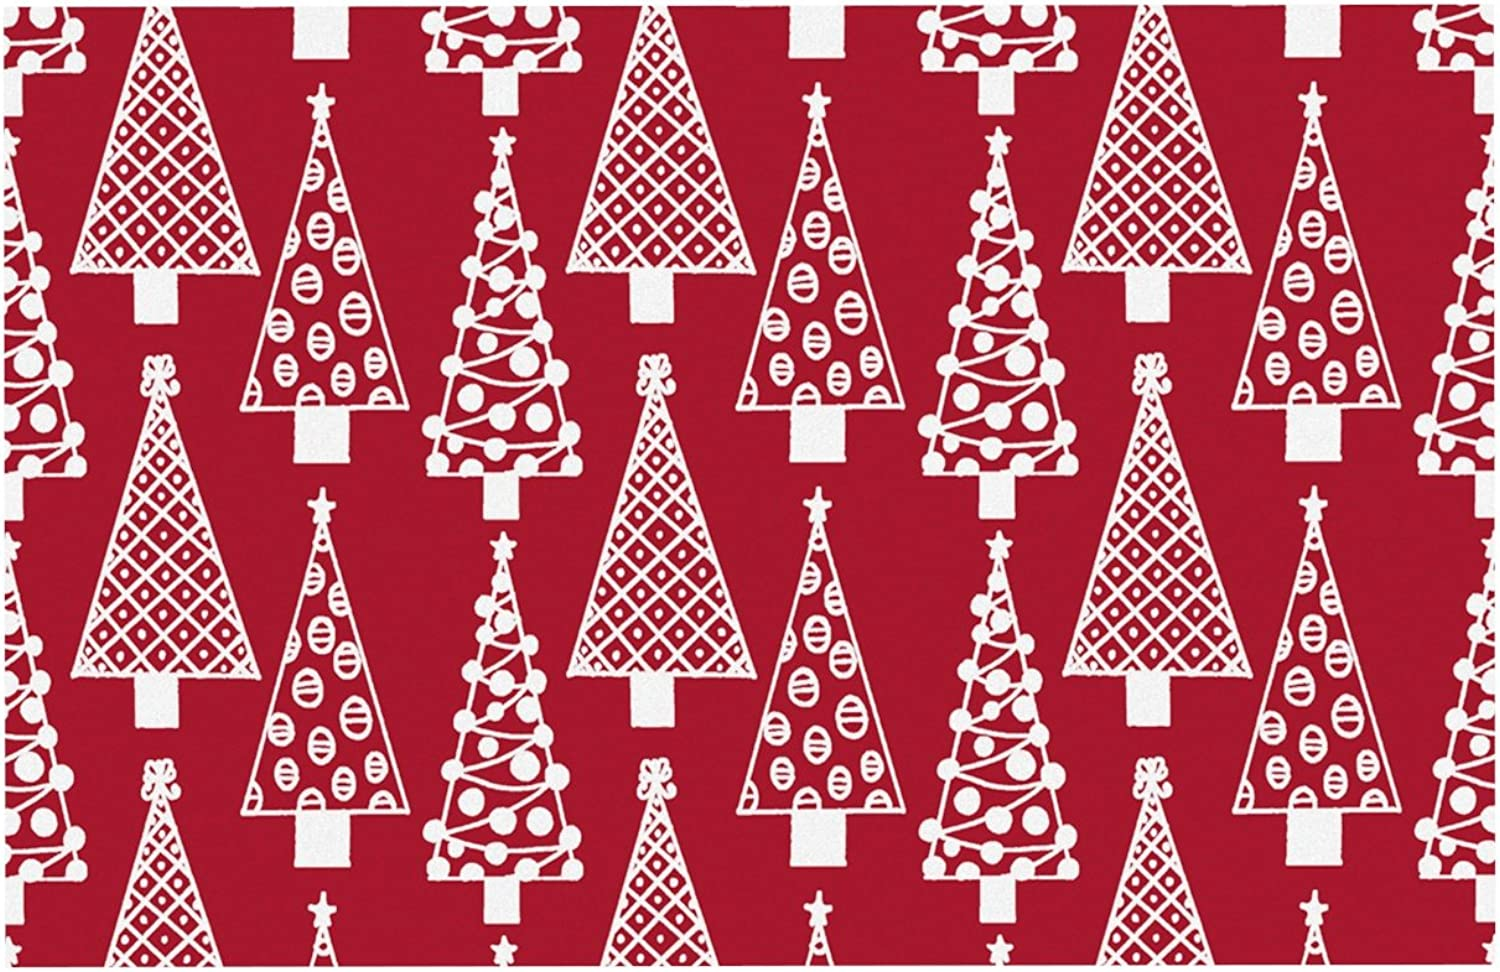 KESS InHouse EO1019CDM02 Emine Ortega Jolly Trees Red Crimson Dog Place Mat, 24  x 15